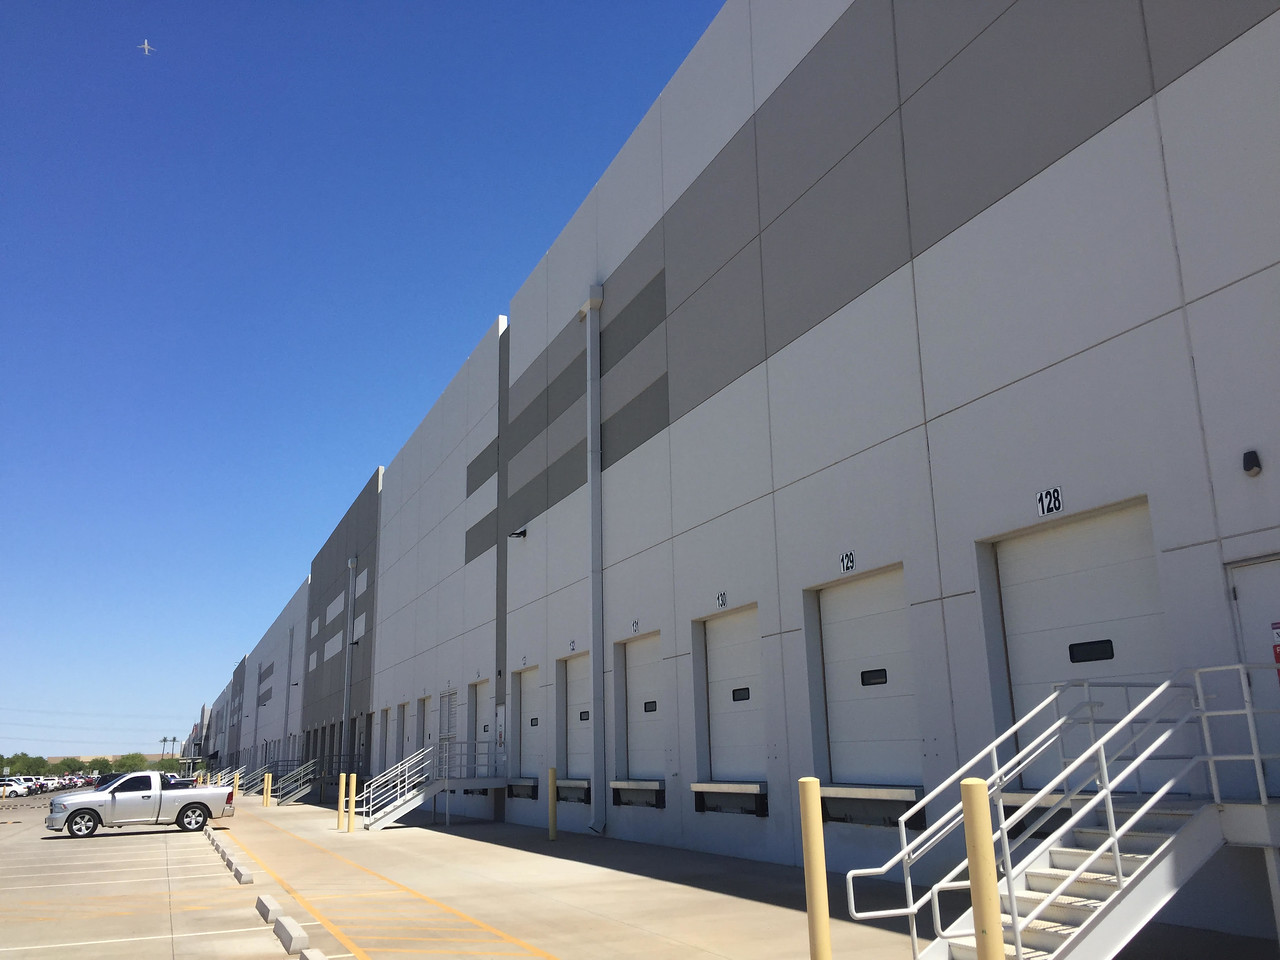 Tour Amazon Fulfillment Center Amazon warehouse in Phoenix